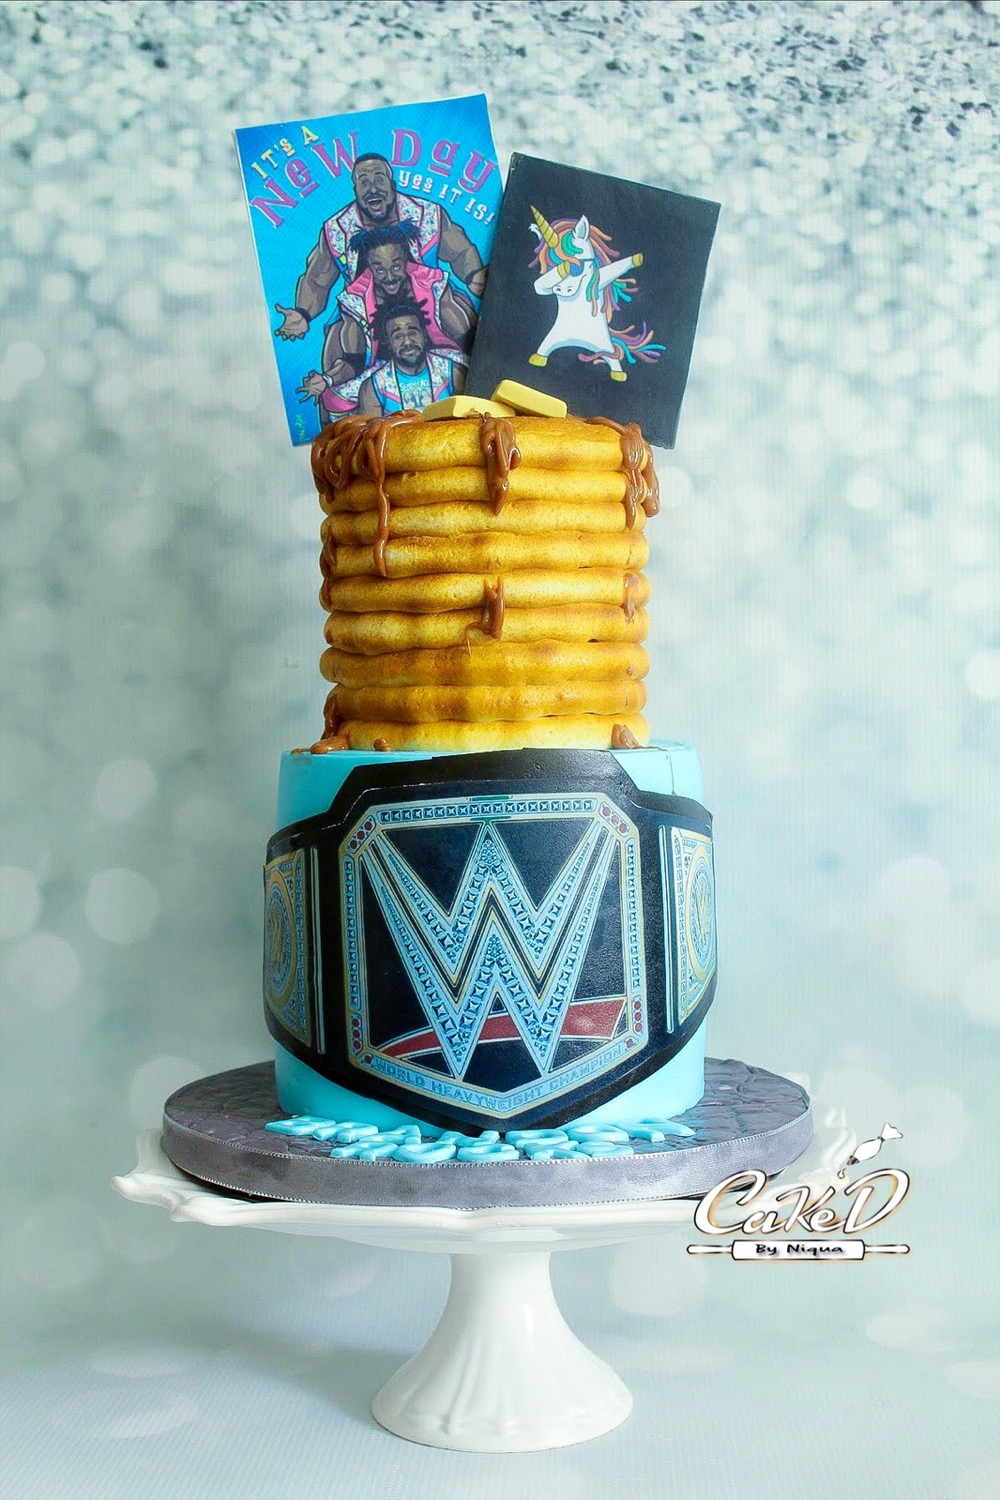 The New Day Birthday Cake